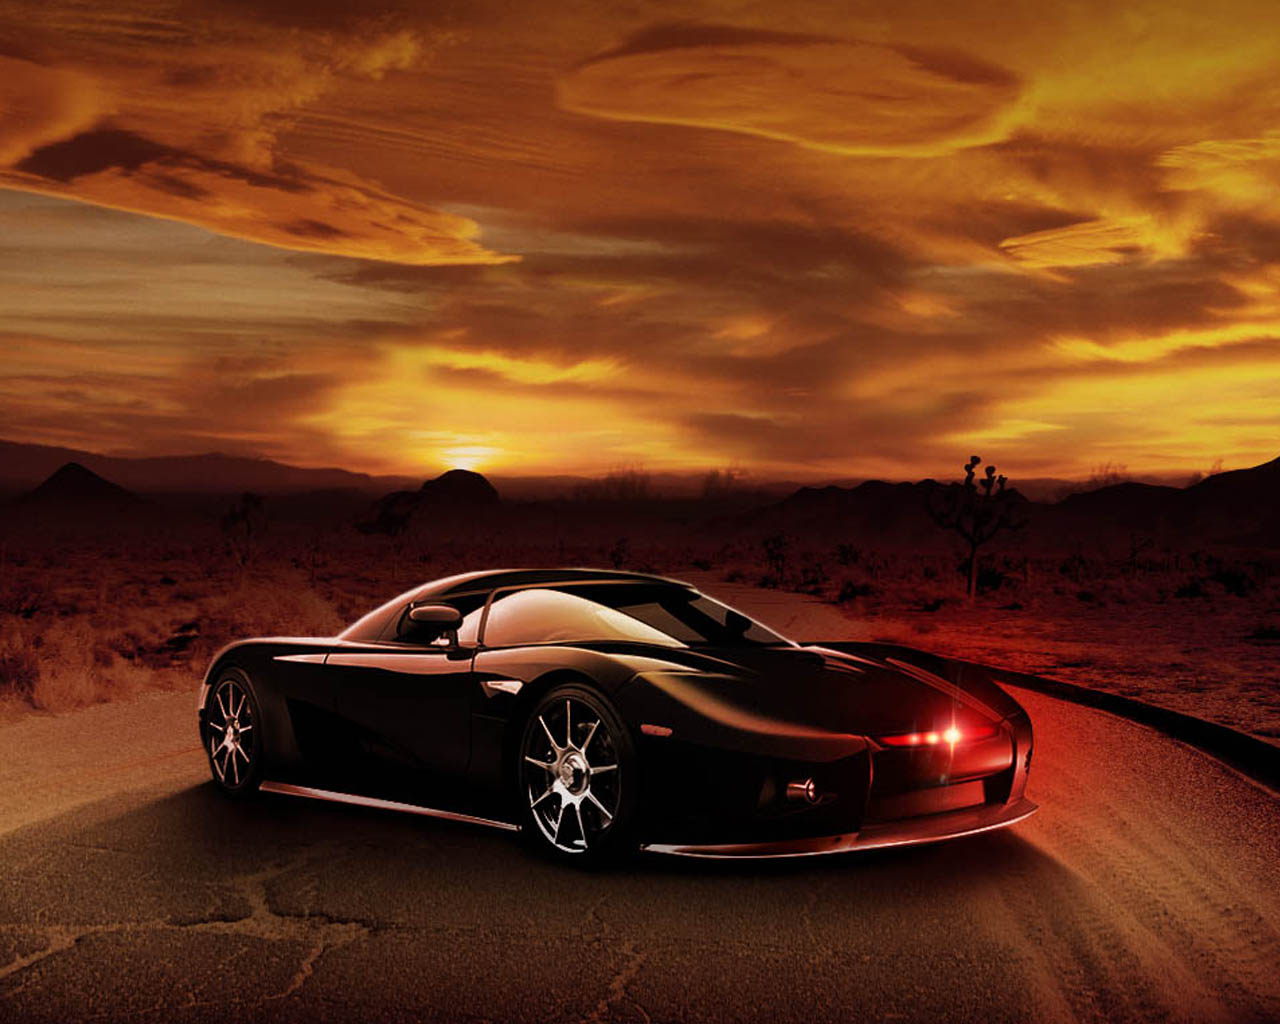 Knight Rider Desktop Wallpapers for HD Widescreen and Mobile 1280x1024